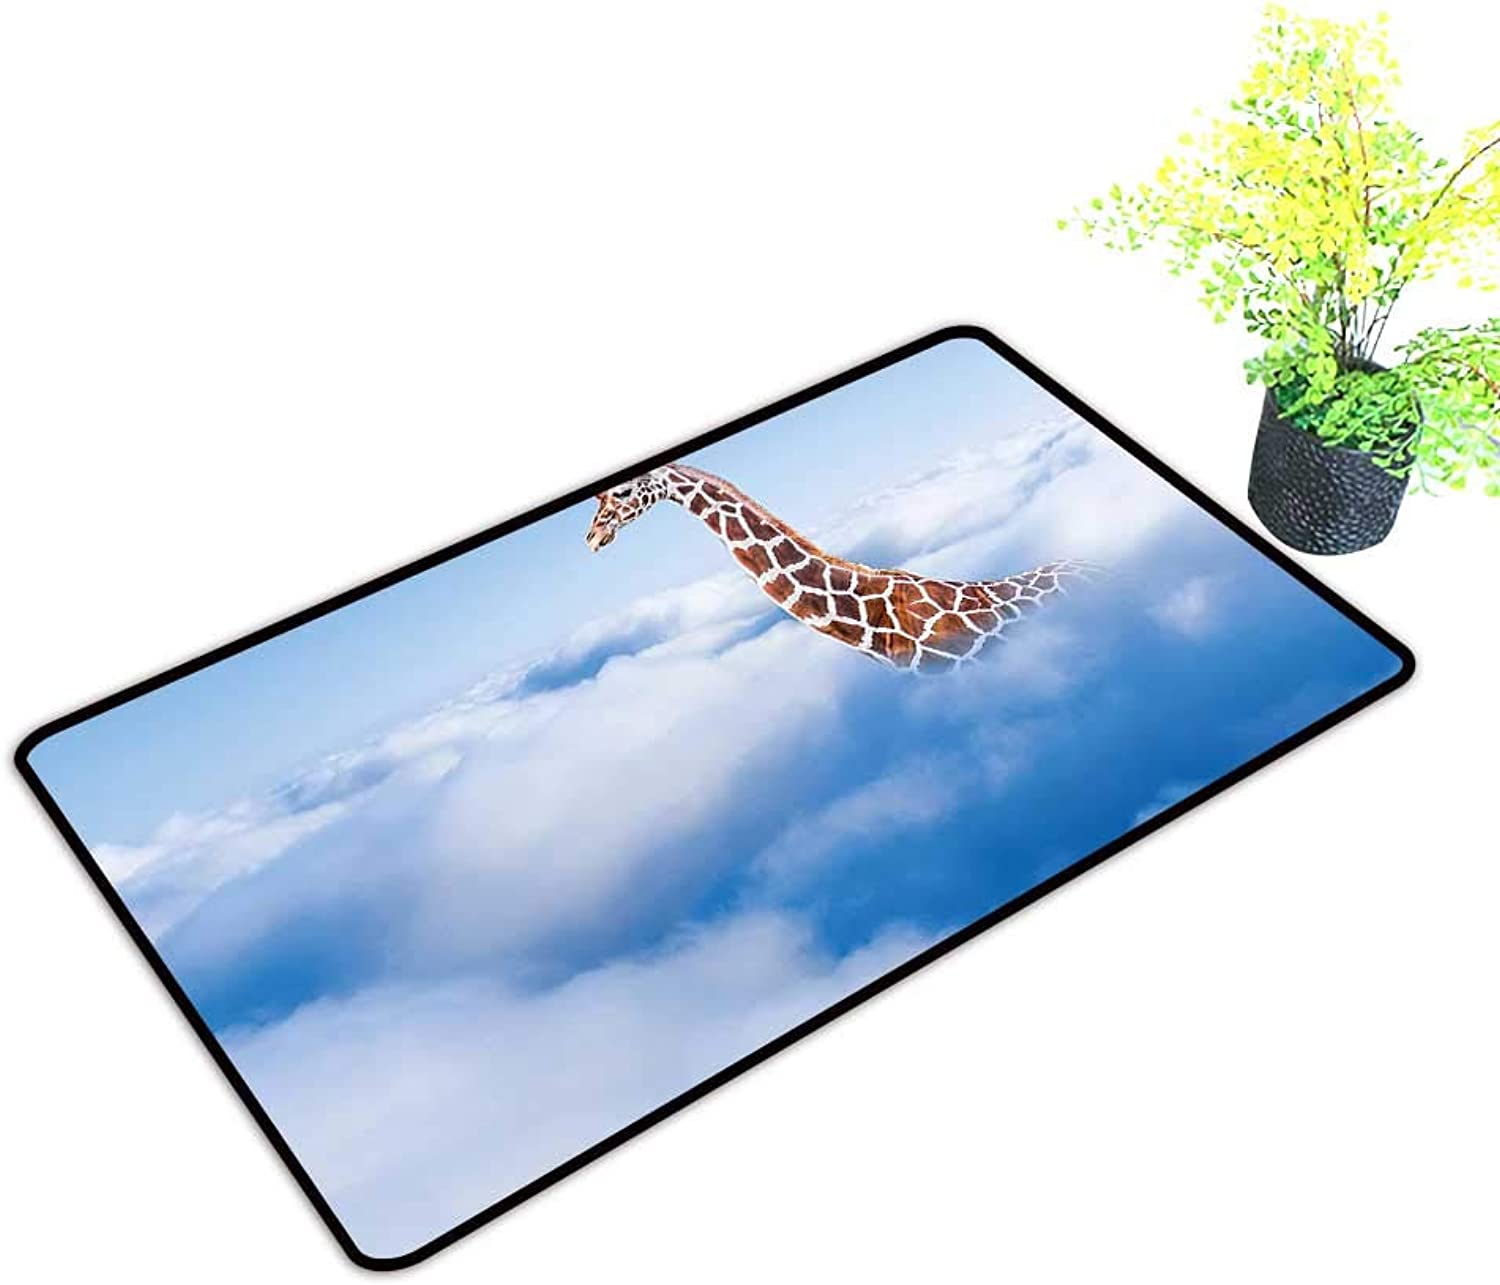 Entrance Door Mat Large Flying Giraffe in Fluffy Heaven Fantasy Animals Themed White Brown Dress Up Your Doorway W39 x H19 INCH